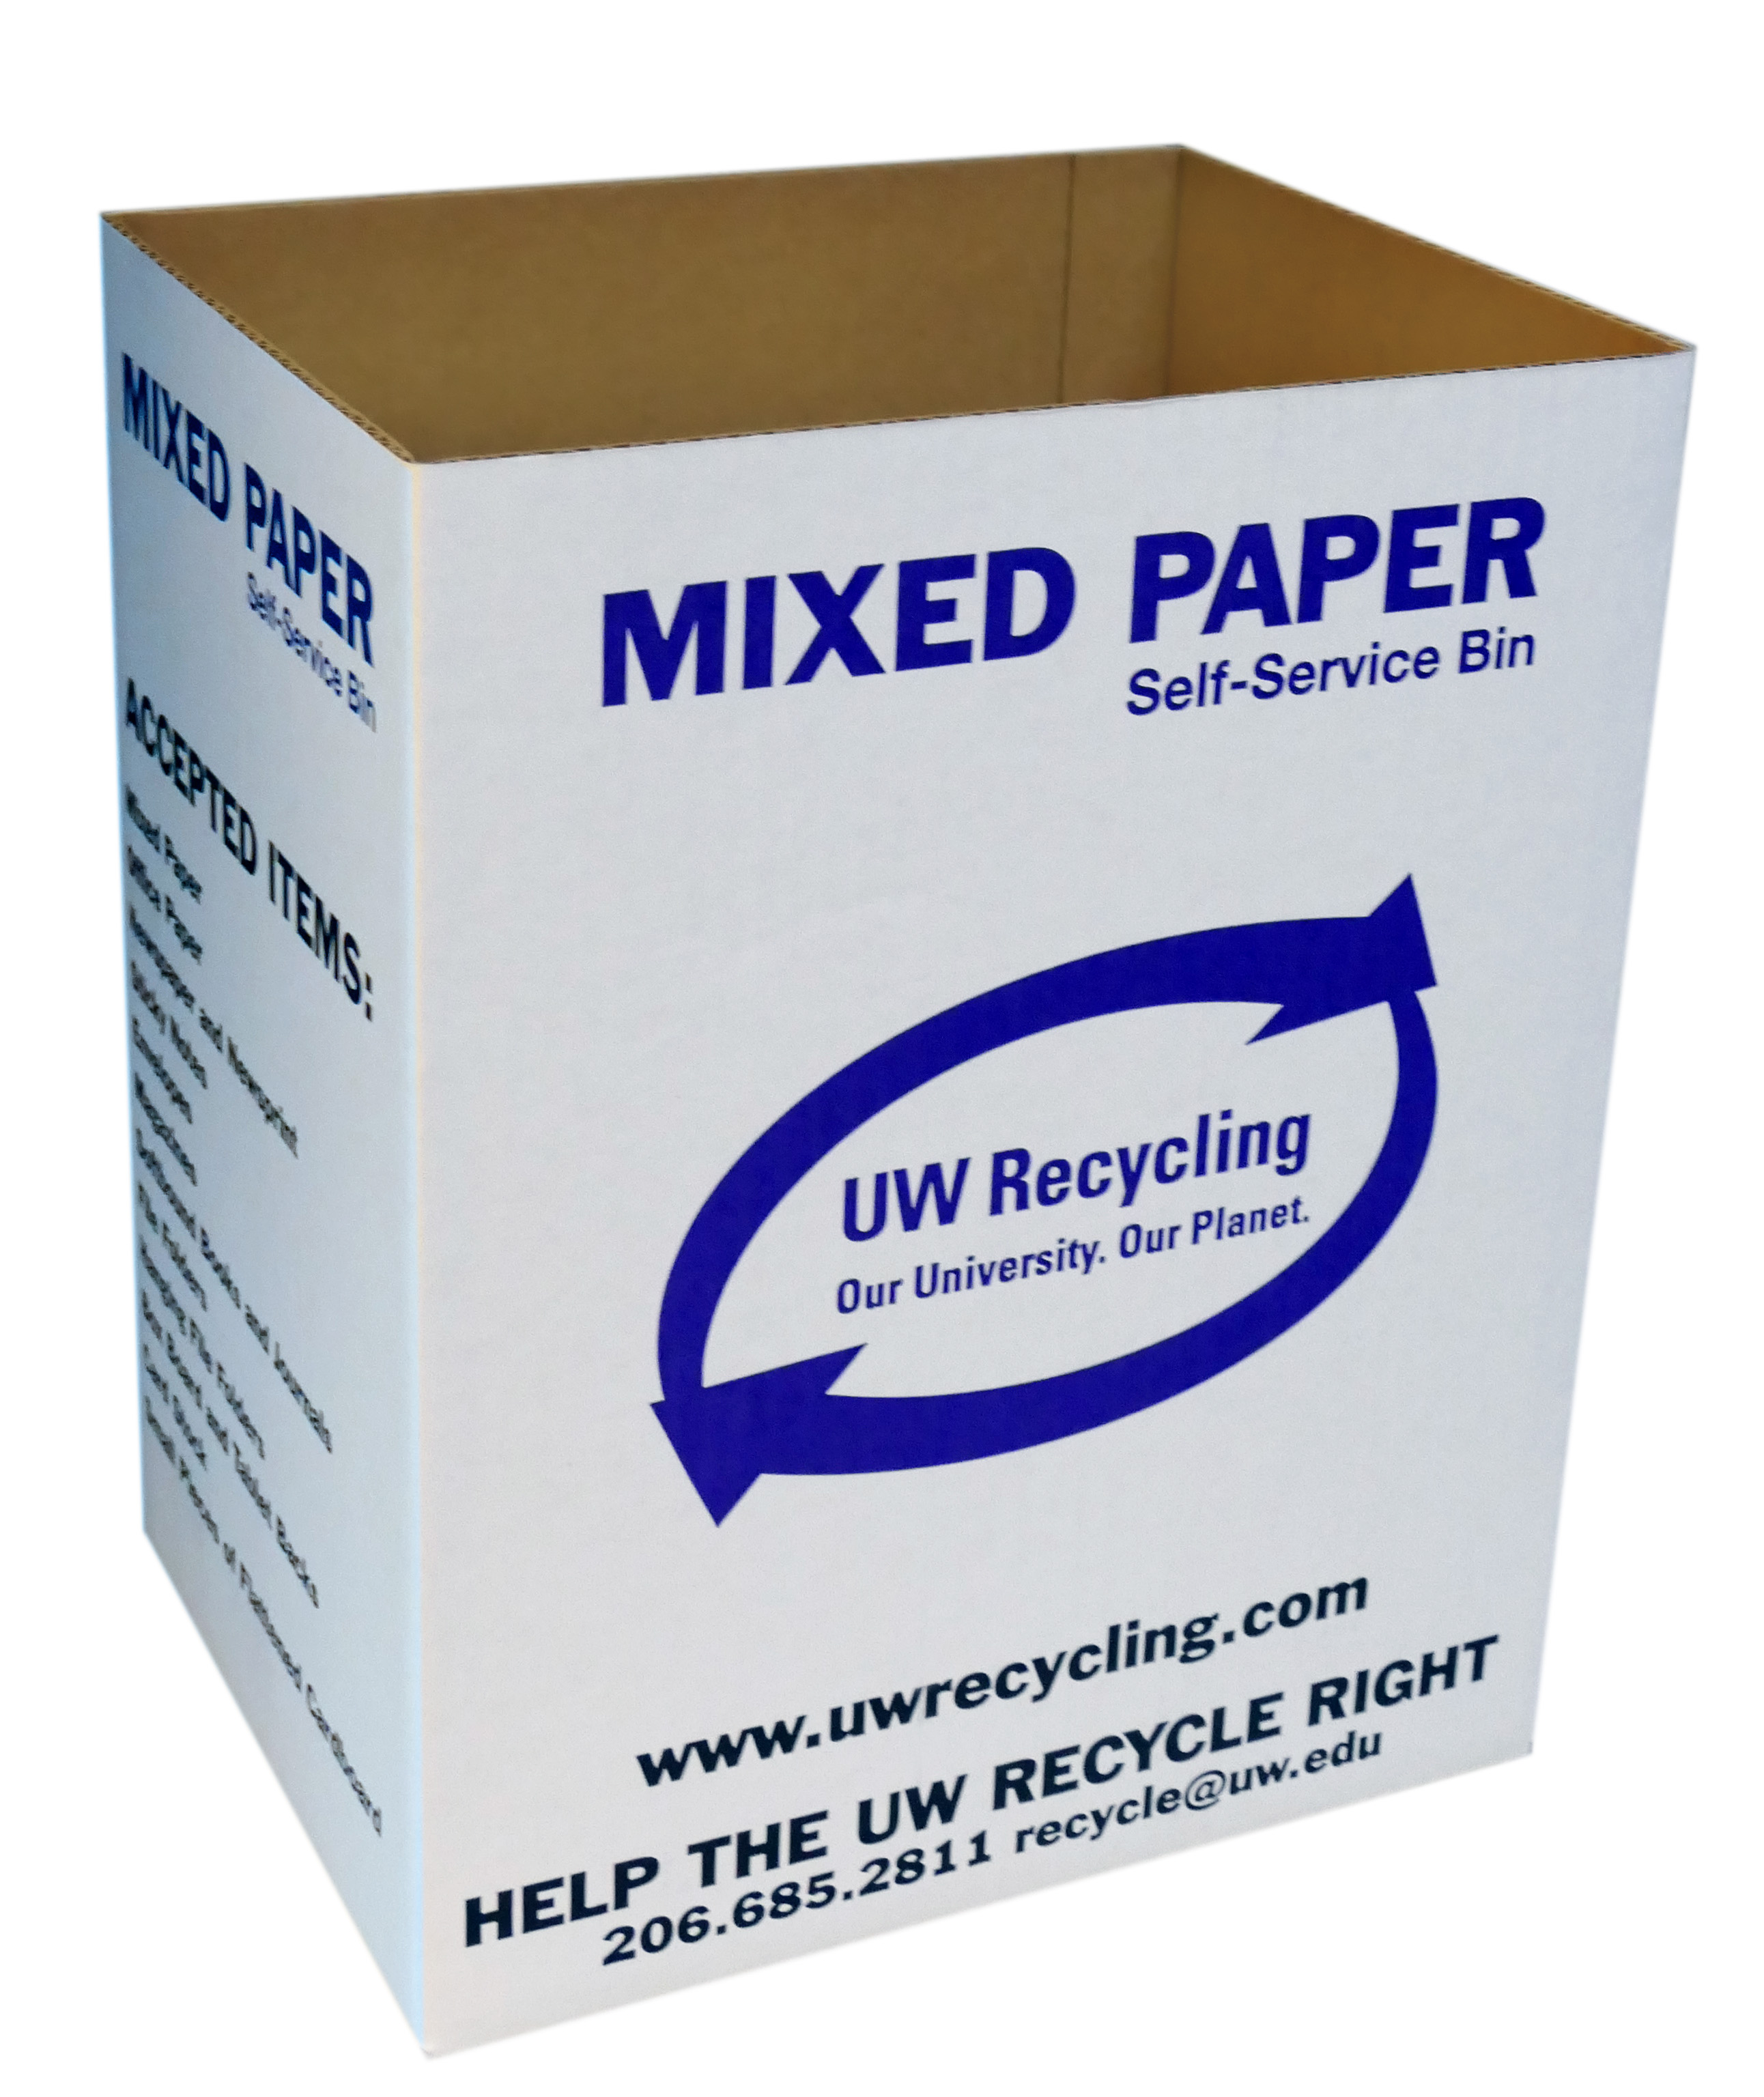 Self-Service Mixed Paper